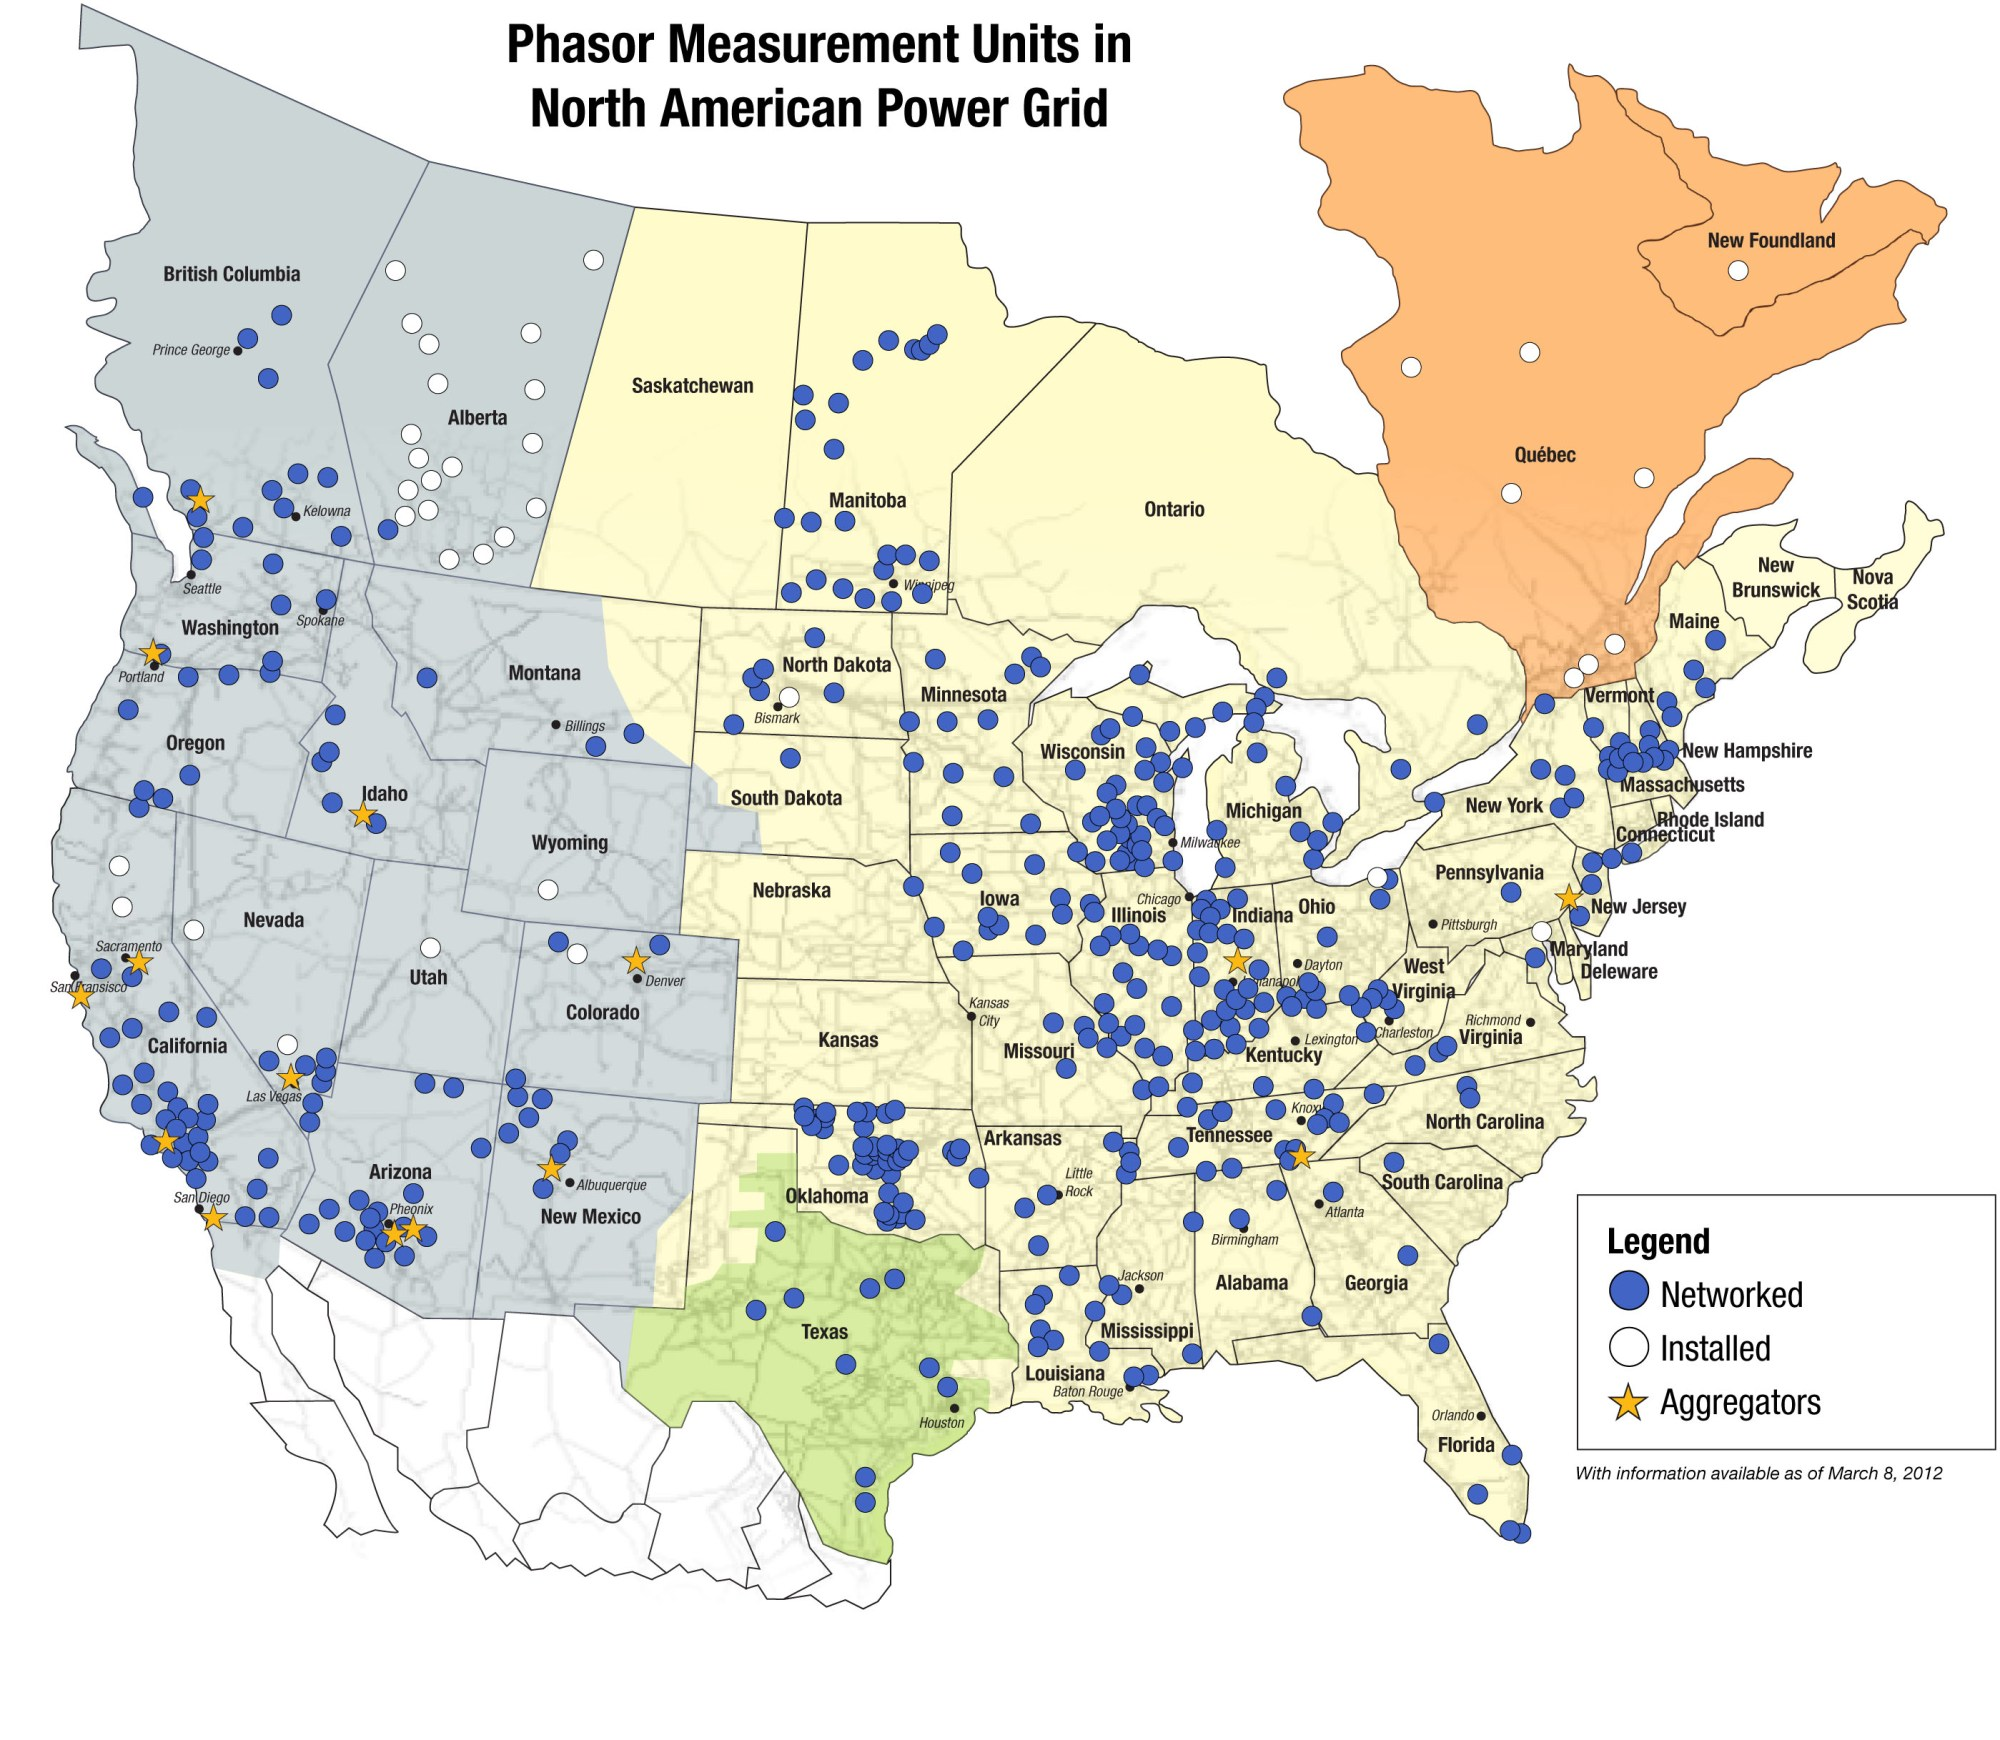 hight resolution of map of phasor measurement units in north american power grid as described in the article